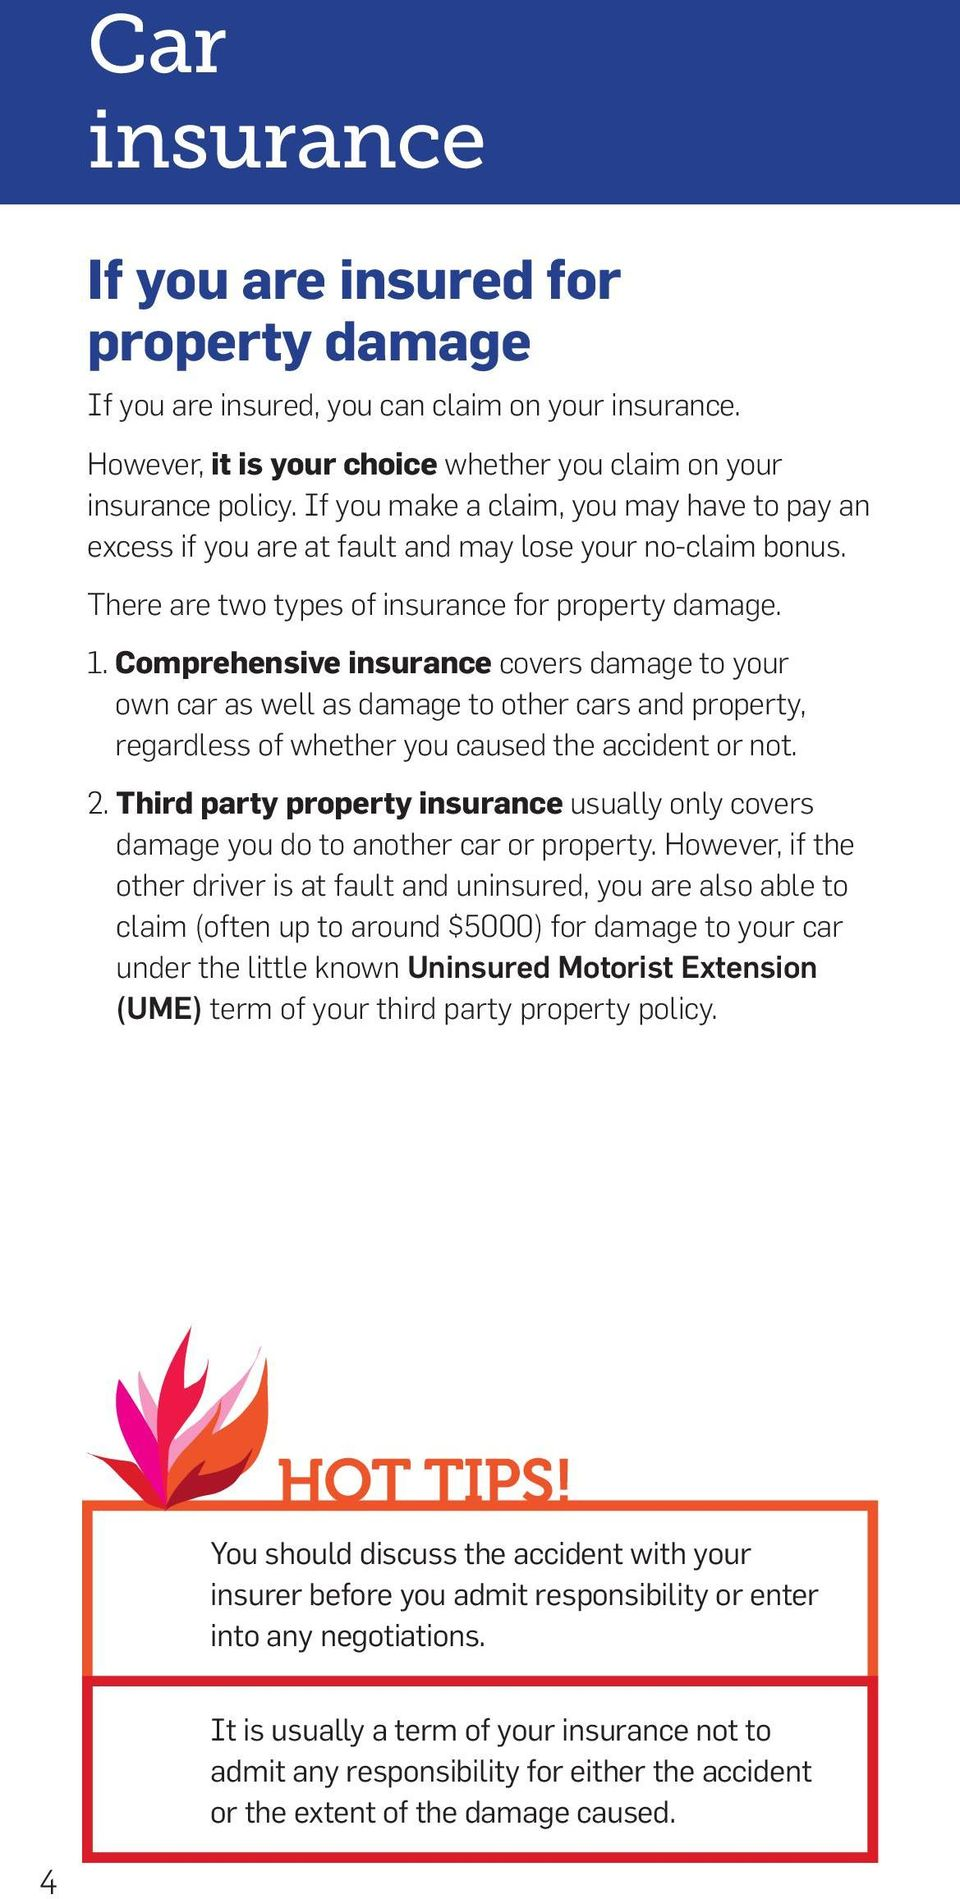 Comprehensive insurance covers damage to your own car as well as damage to other cars and property, regardless of whether you caused the accident or not. 2.